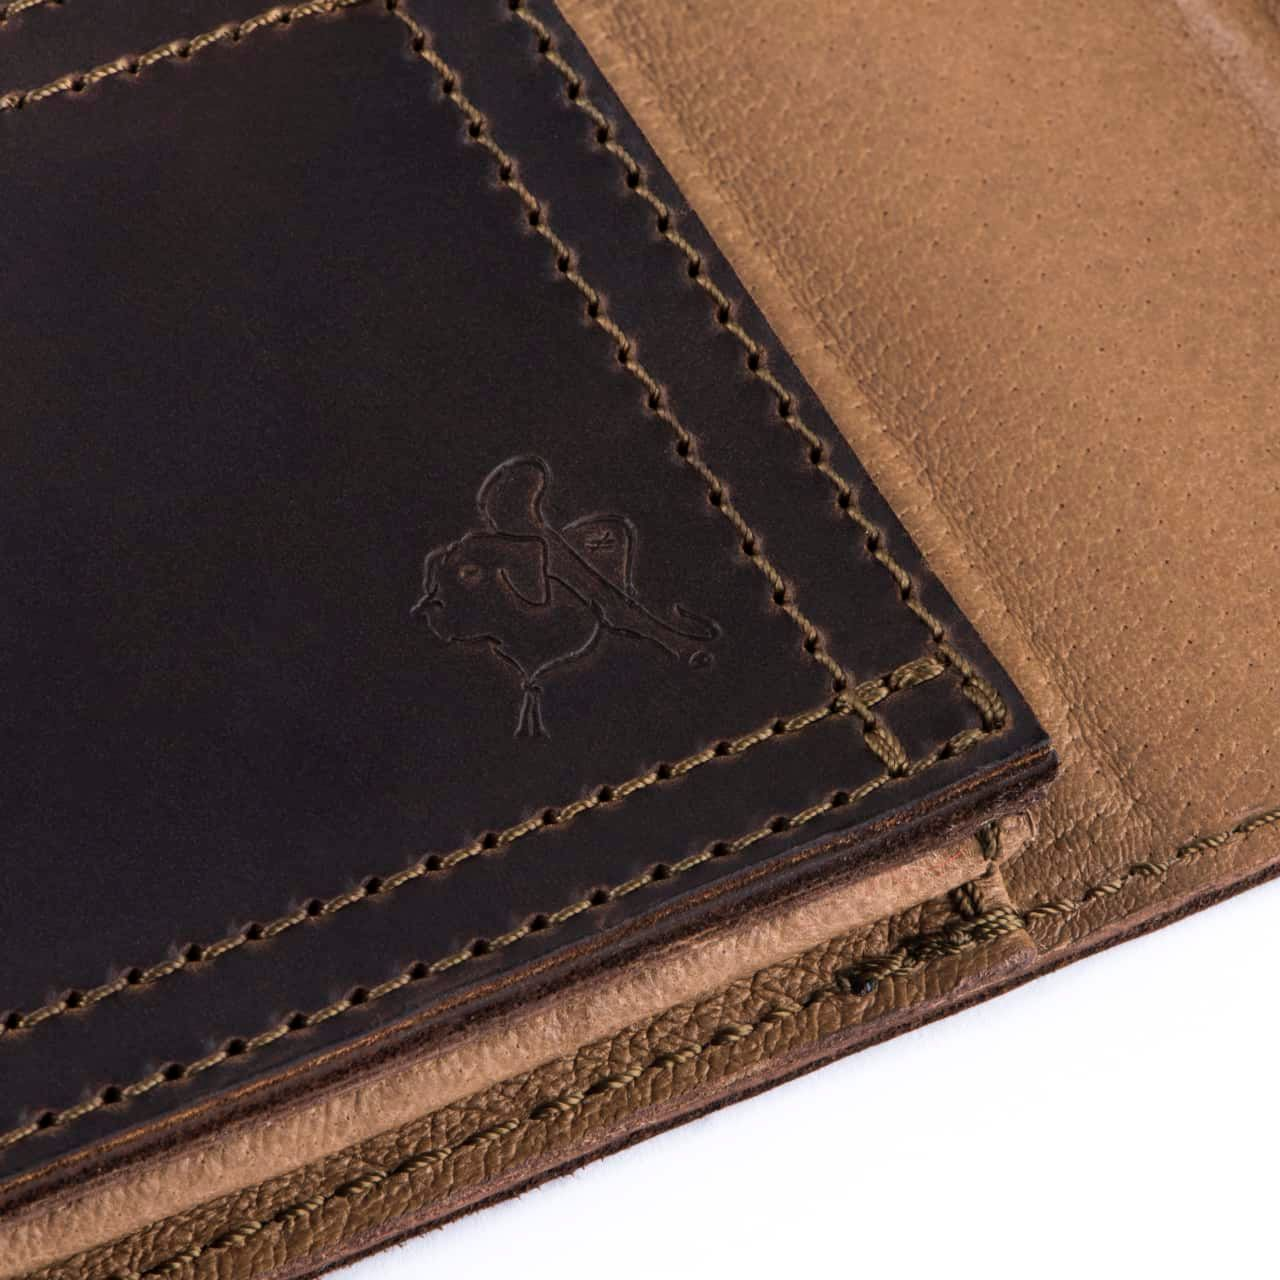 Leather Tablet Notepad Holder Zoomed in on Blue the Dog Stamp in the Color Dark Coffee Brown